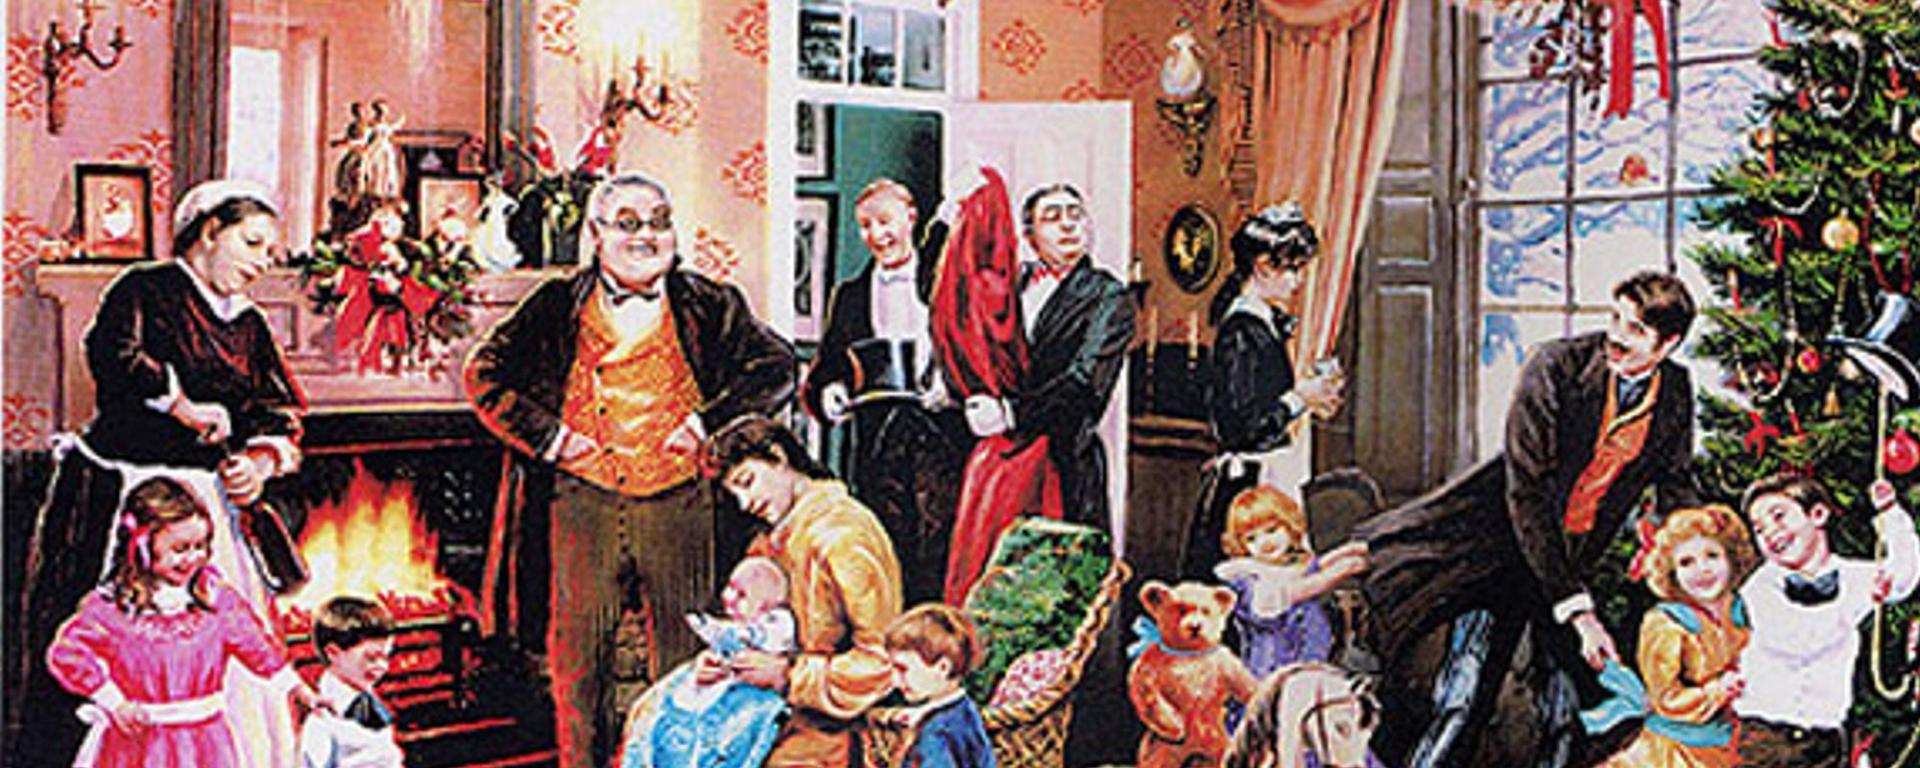 A Picture Of A Victorian Christmas Scene With Family Gathered Around The Tree